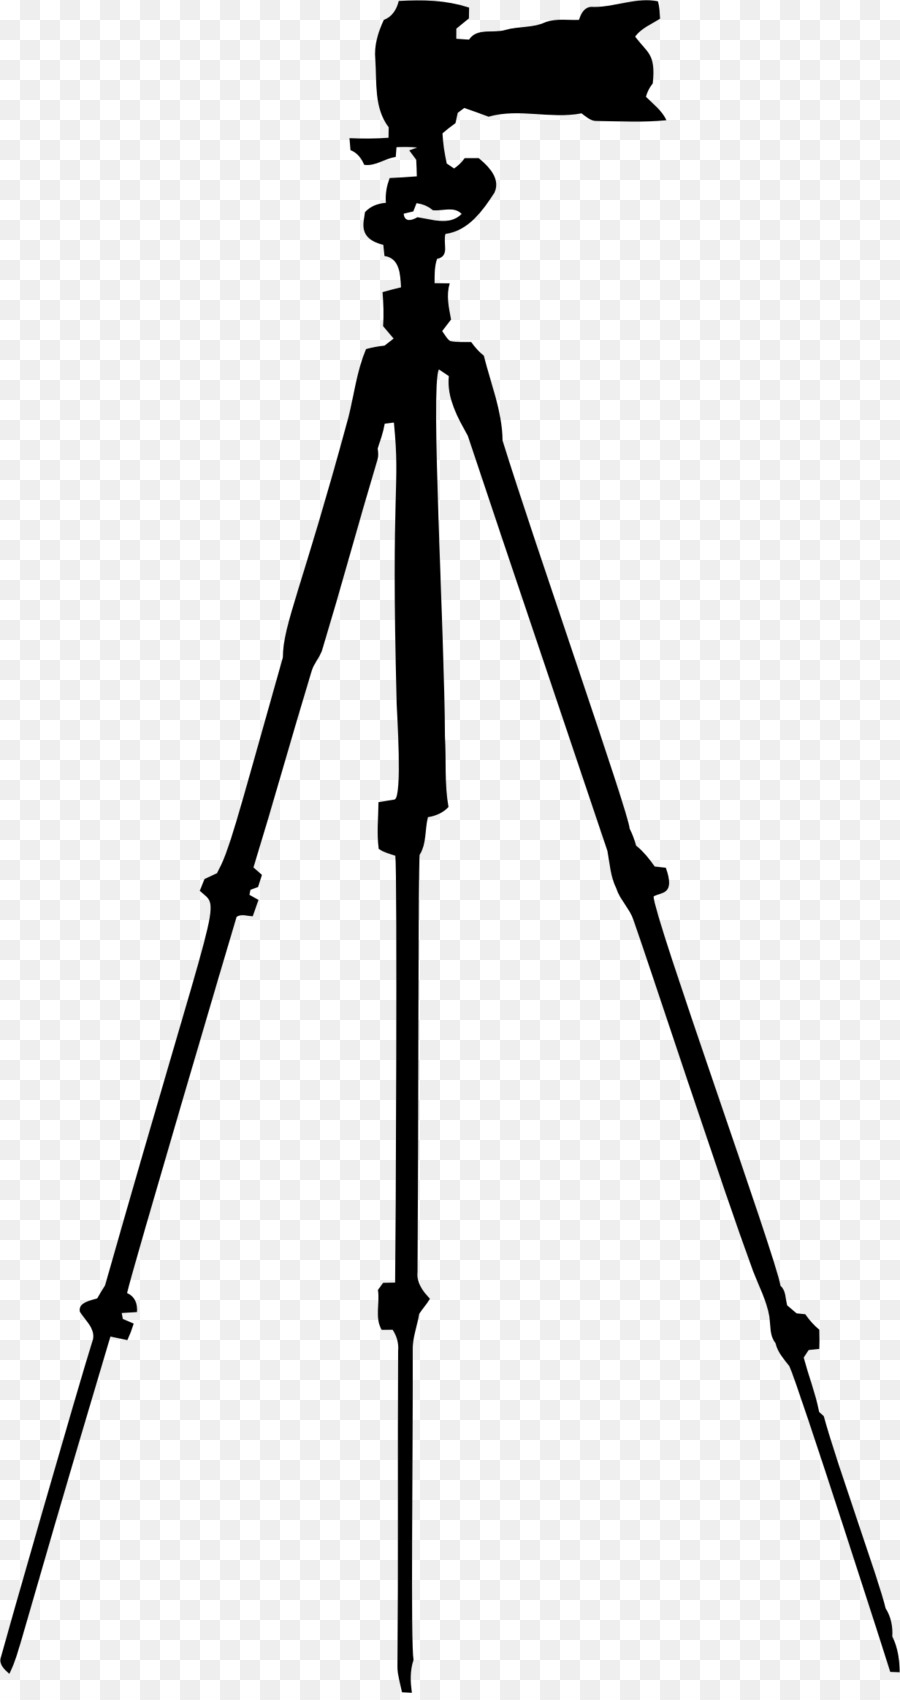 Camera Silhouette clipart.